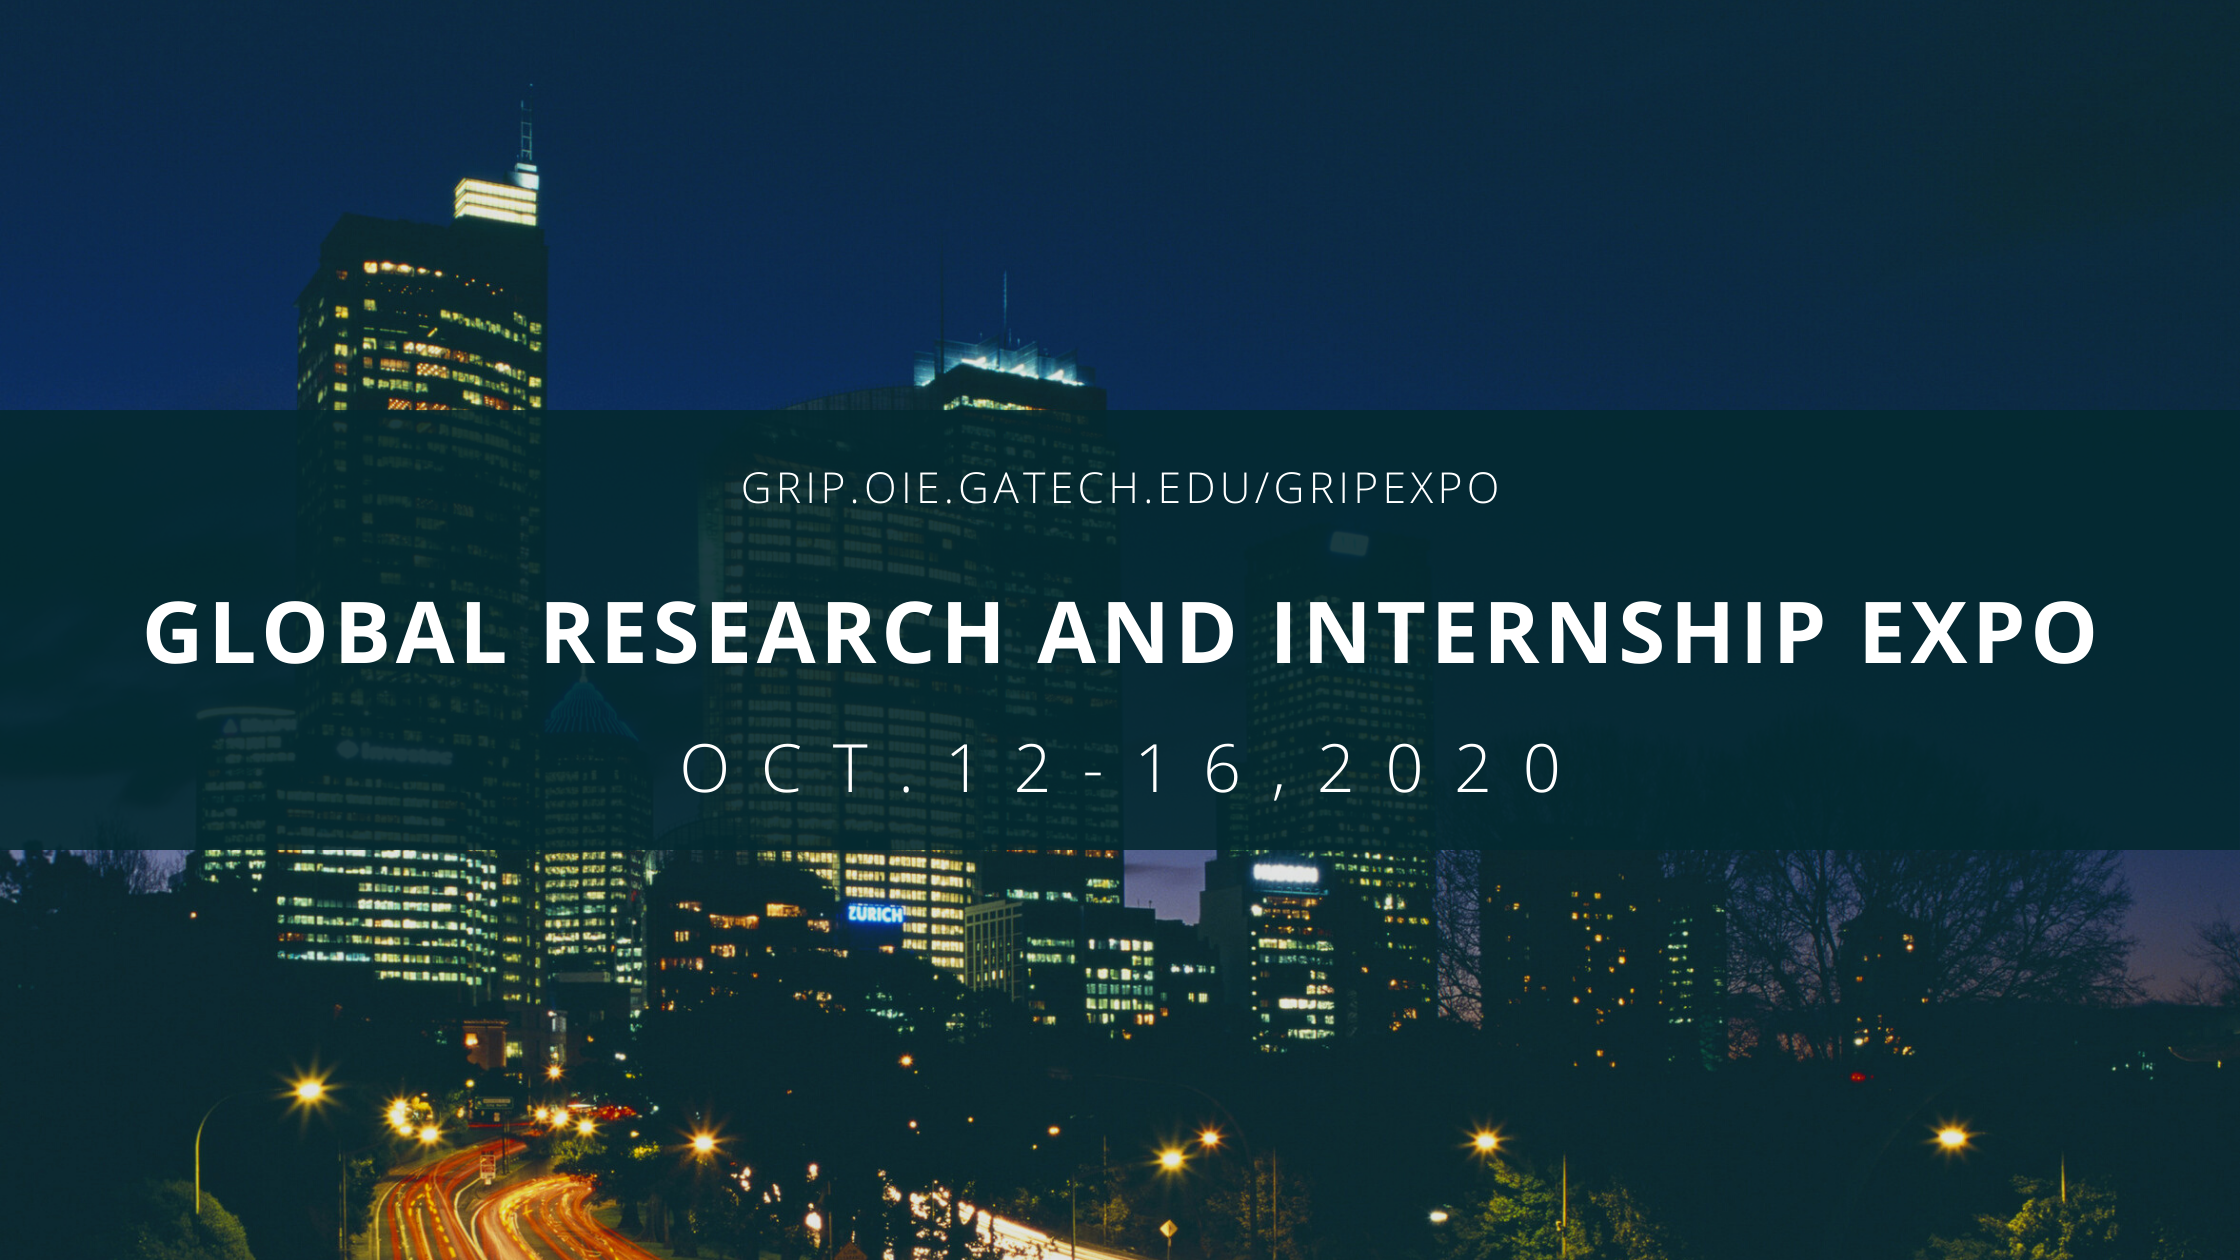 Global Research and Internship Expo- October 12-16, 2020